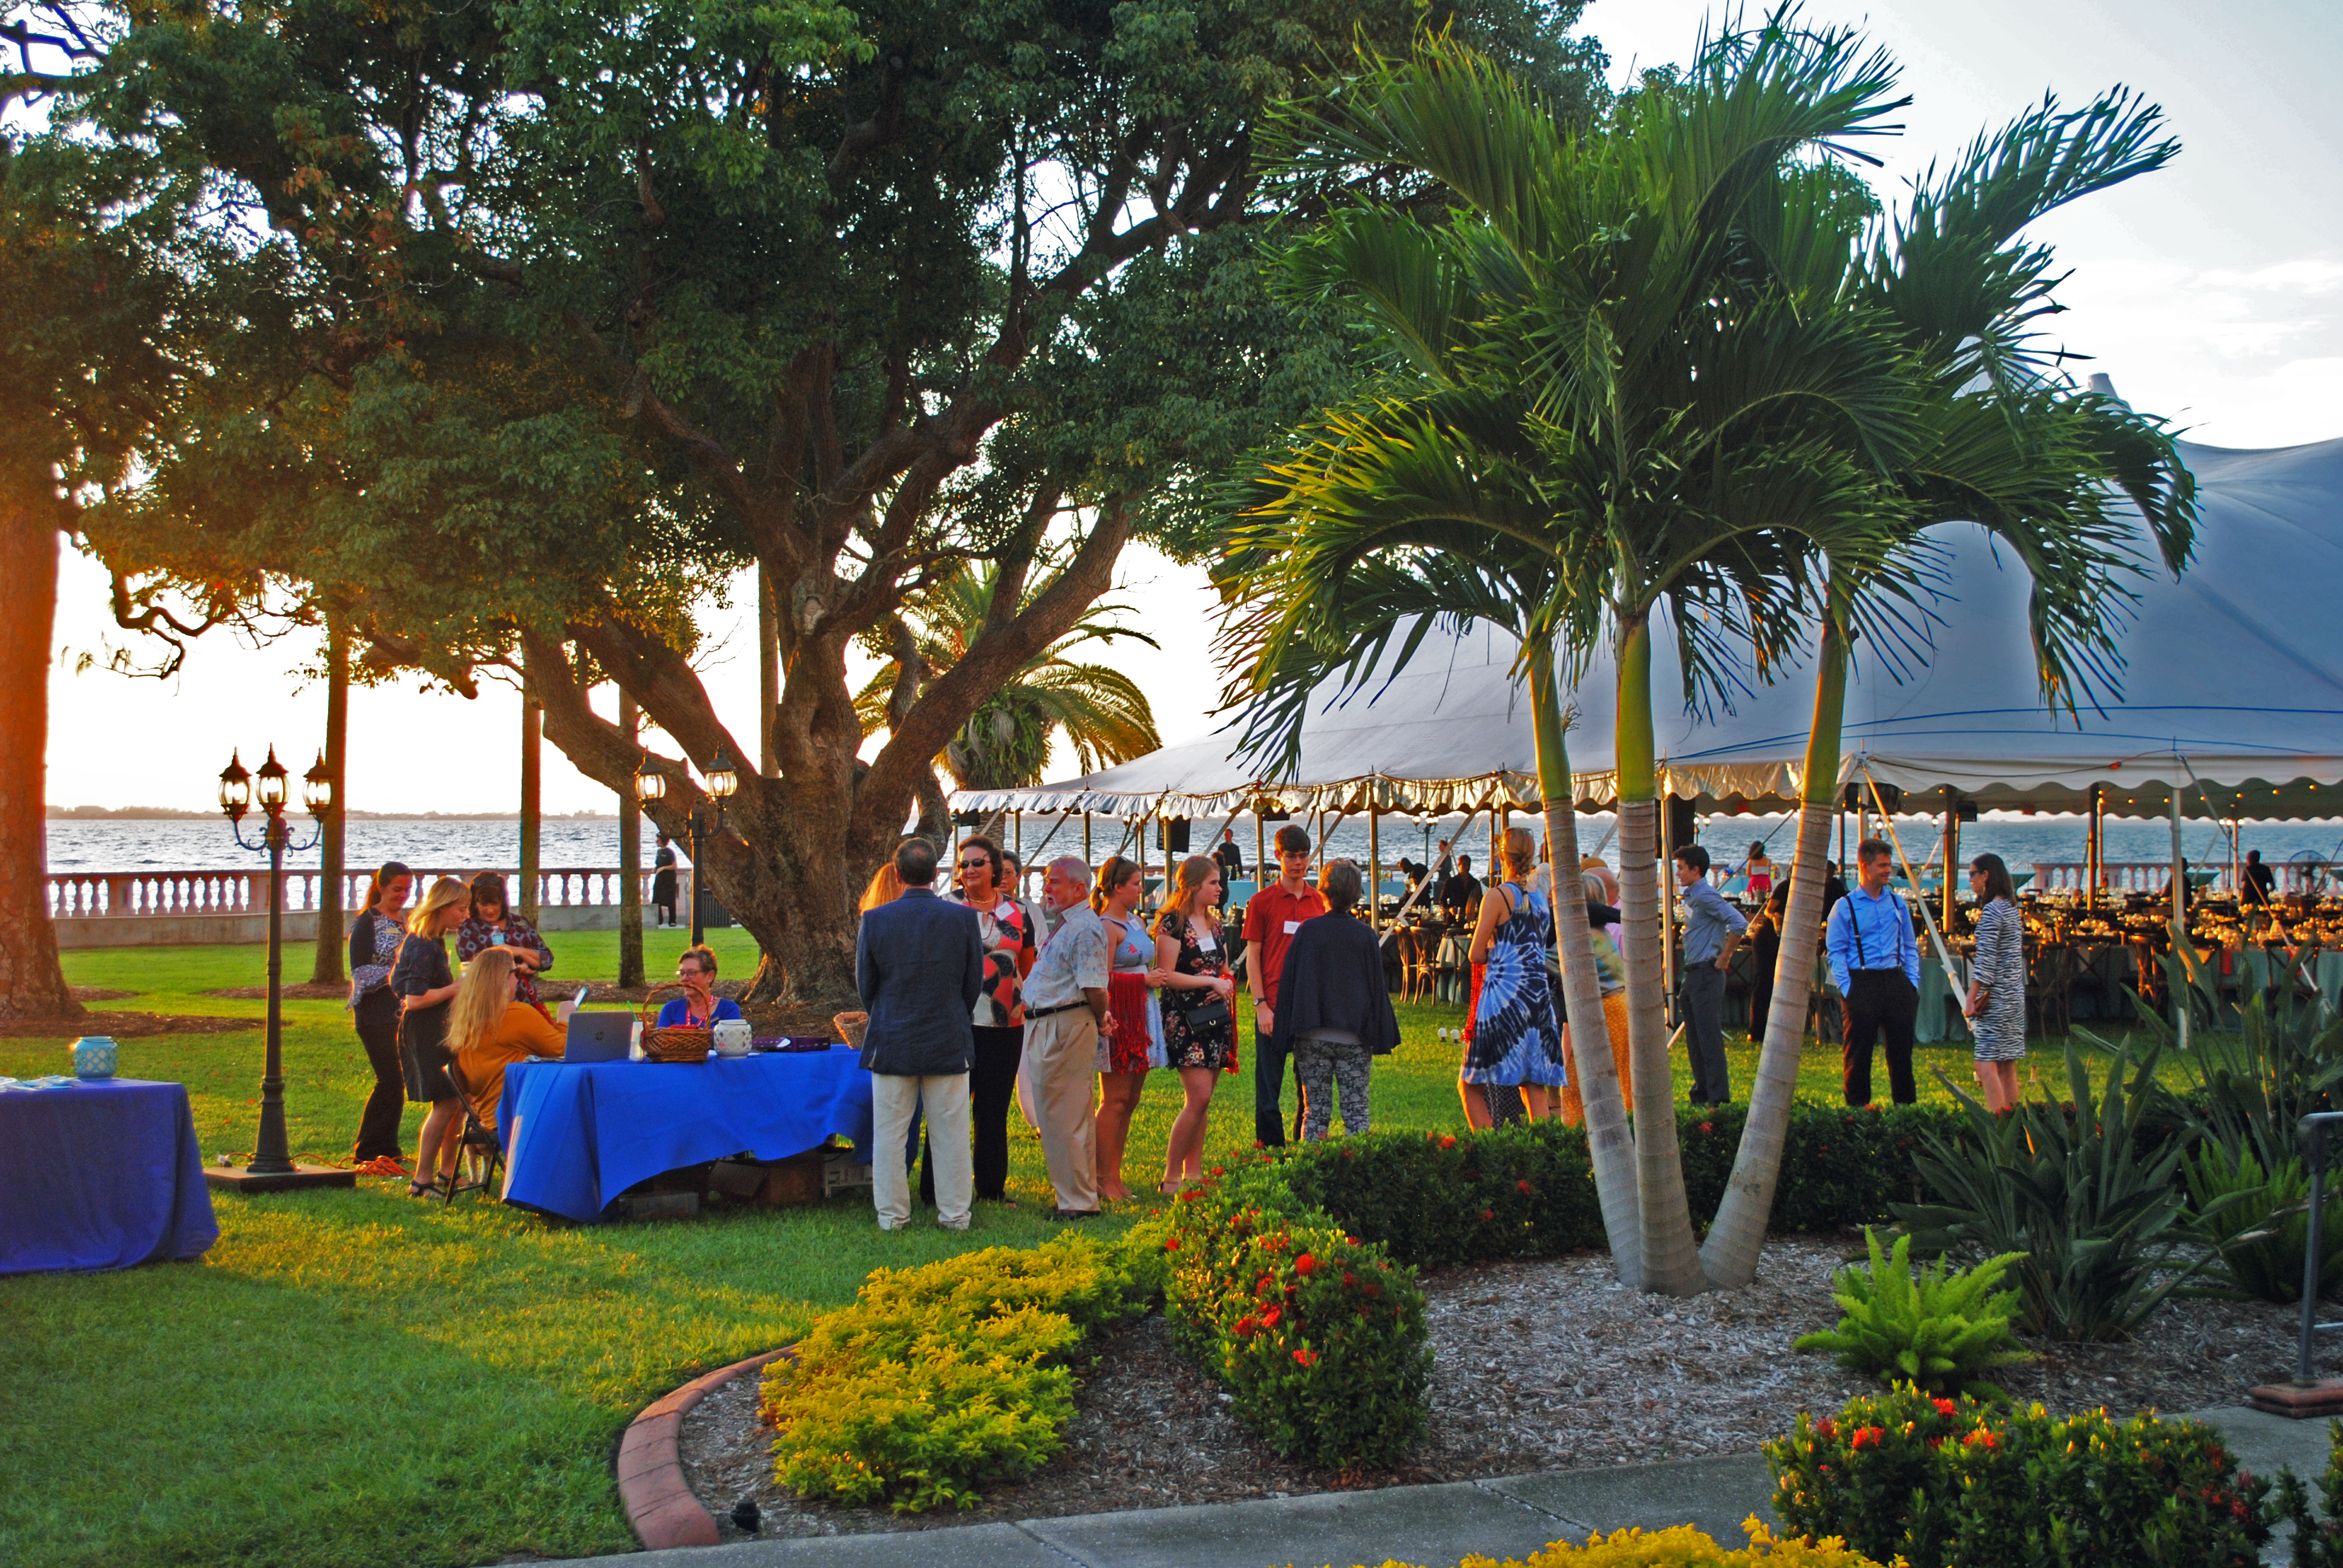 Clambake raises $318,000 for student scholarships